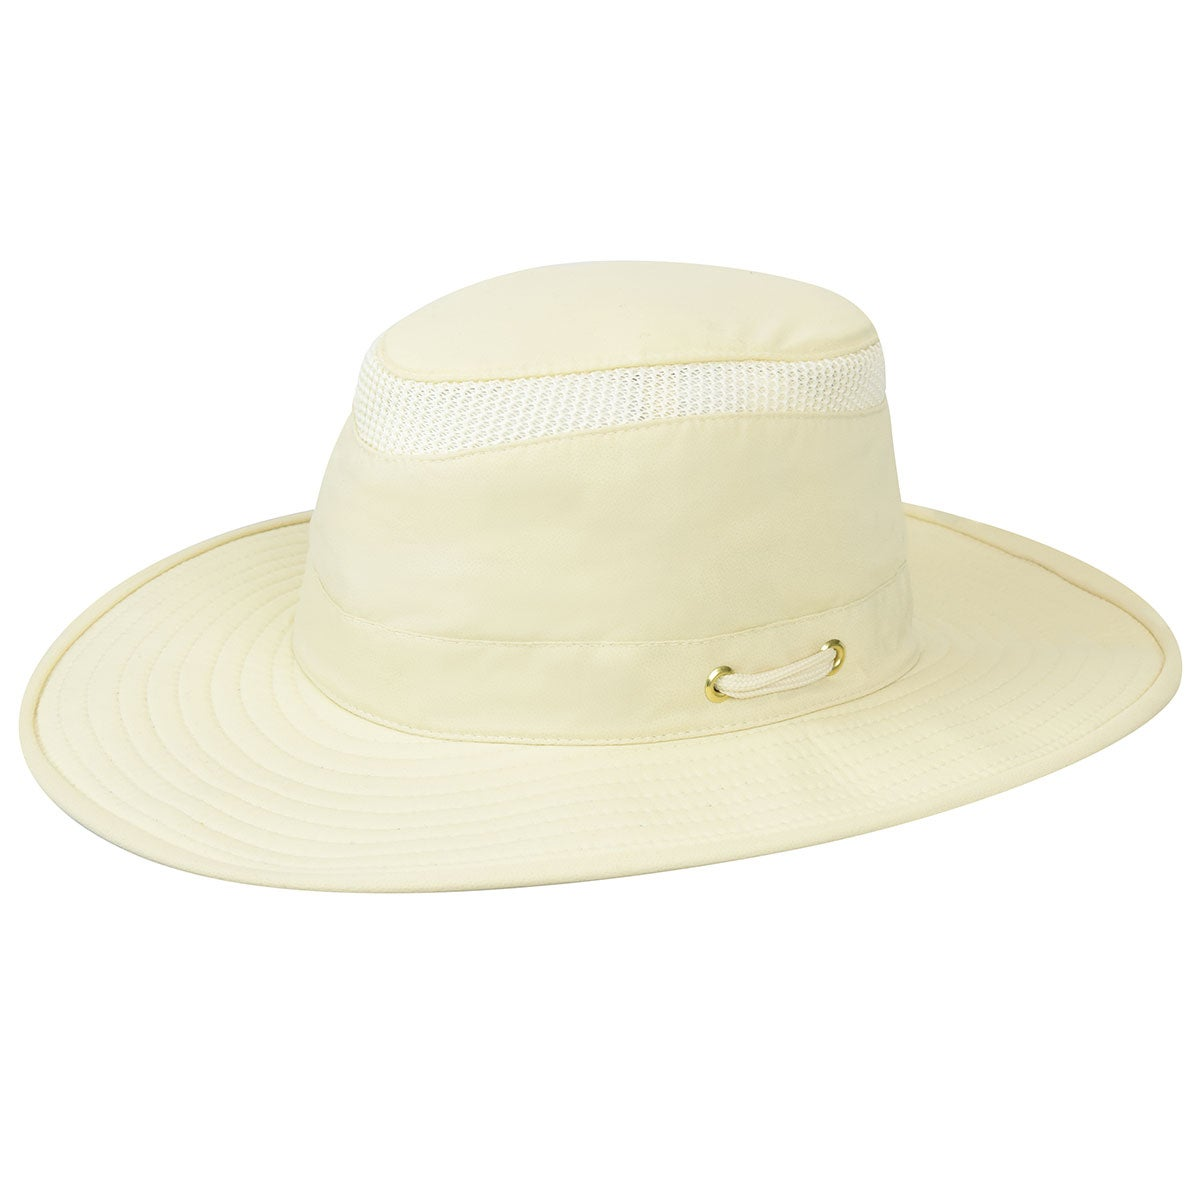 Tilley Airflo Lightweight Broad Brim Outback in Natural,Green